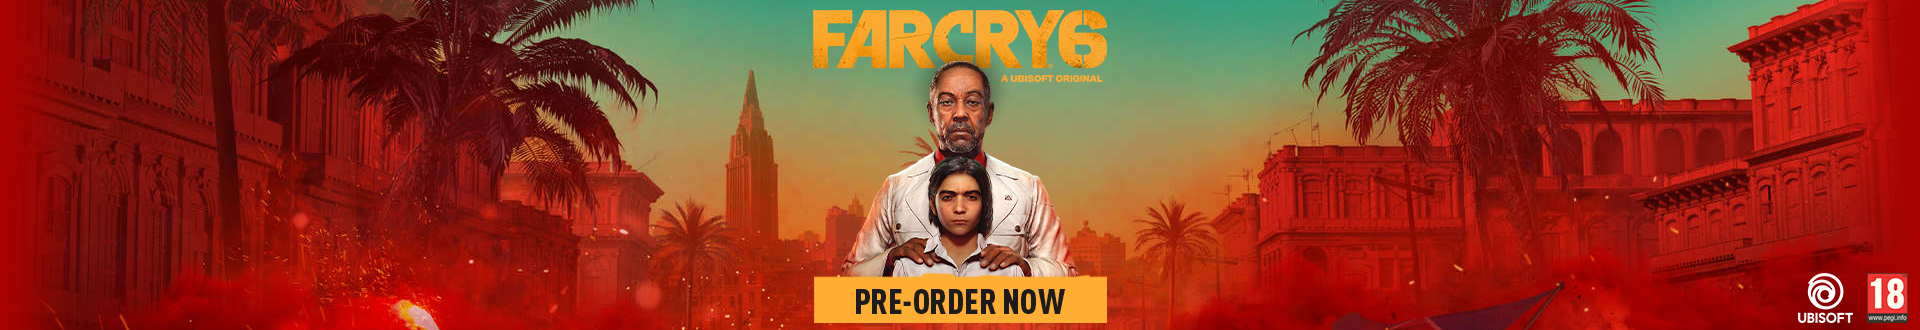 Pre-order Far Cry 6 today! Released 7th October 2021